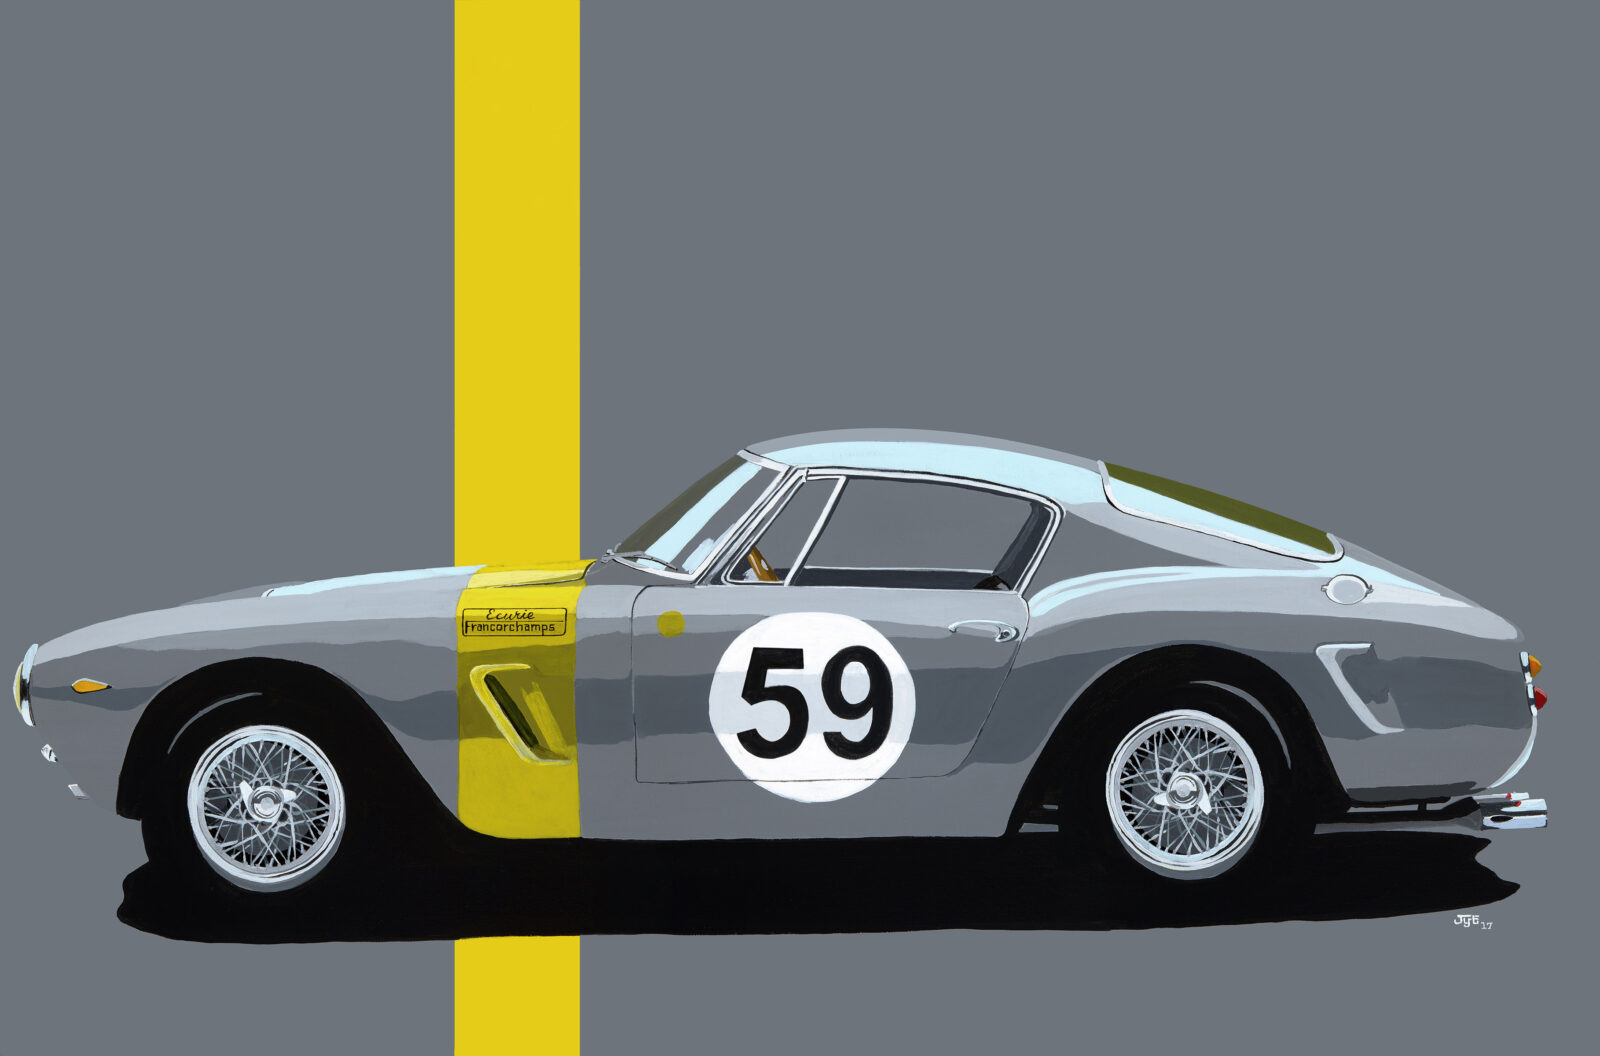 Art of Jean Yves Tabourot Ferrari 250 GT SWB 1600x1056 - The Art of Jean-Yves Tabourot